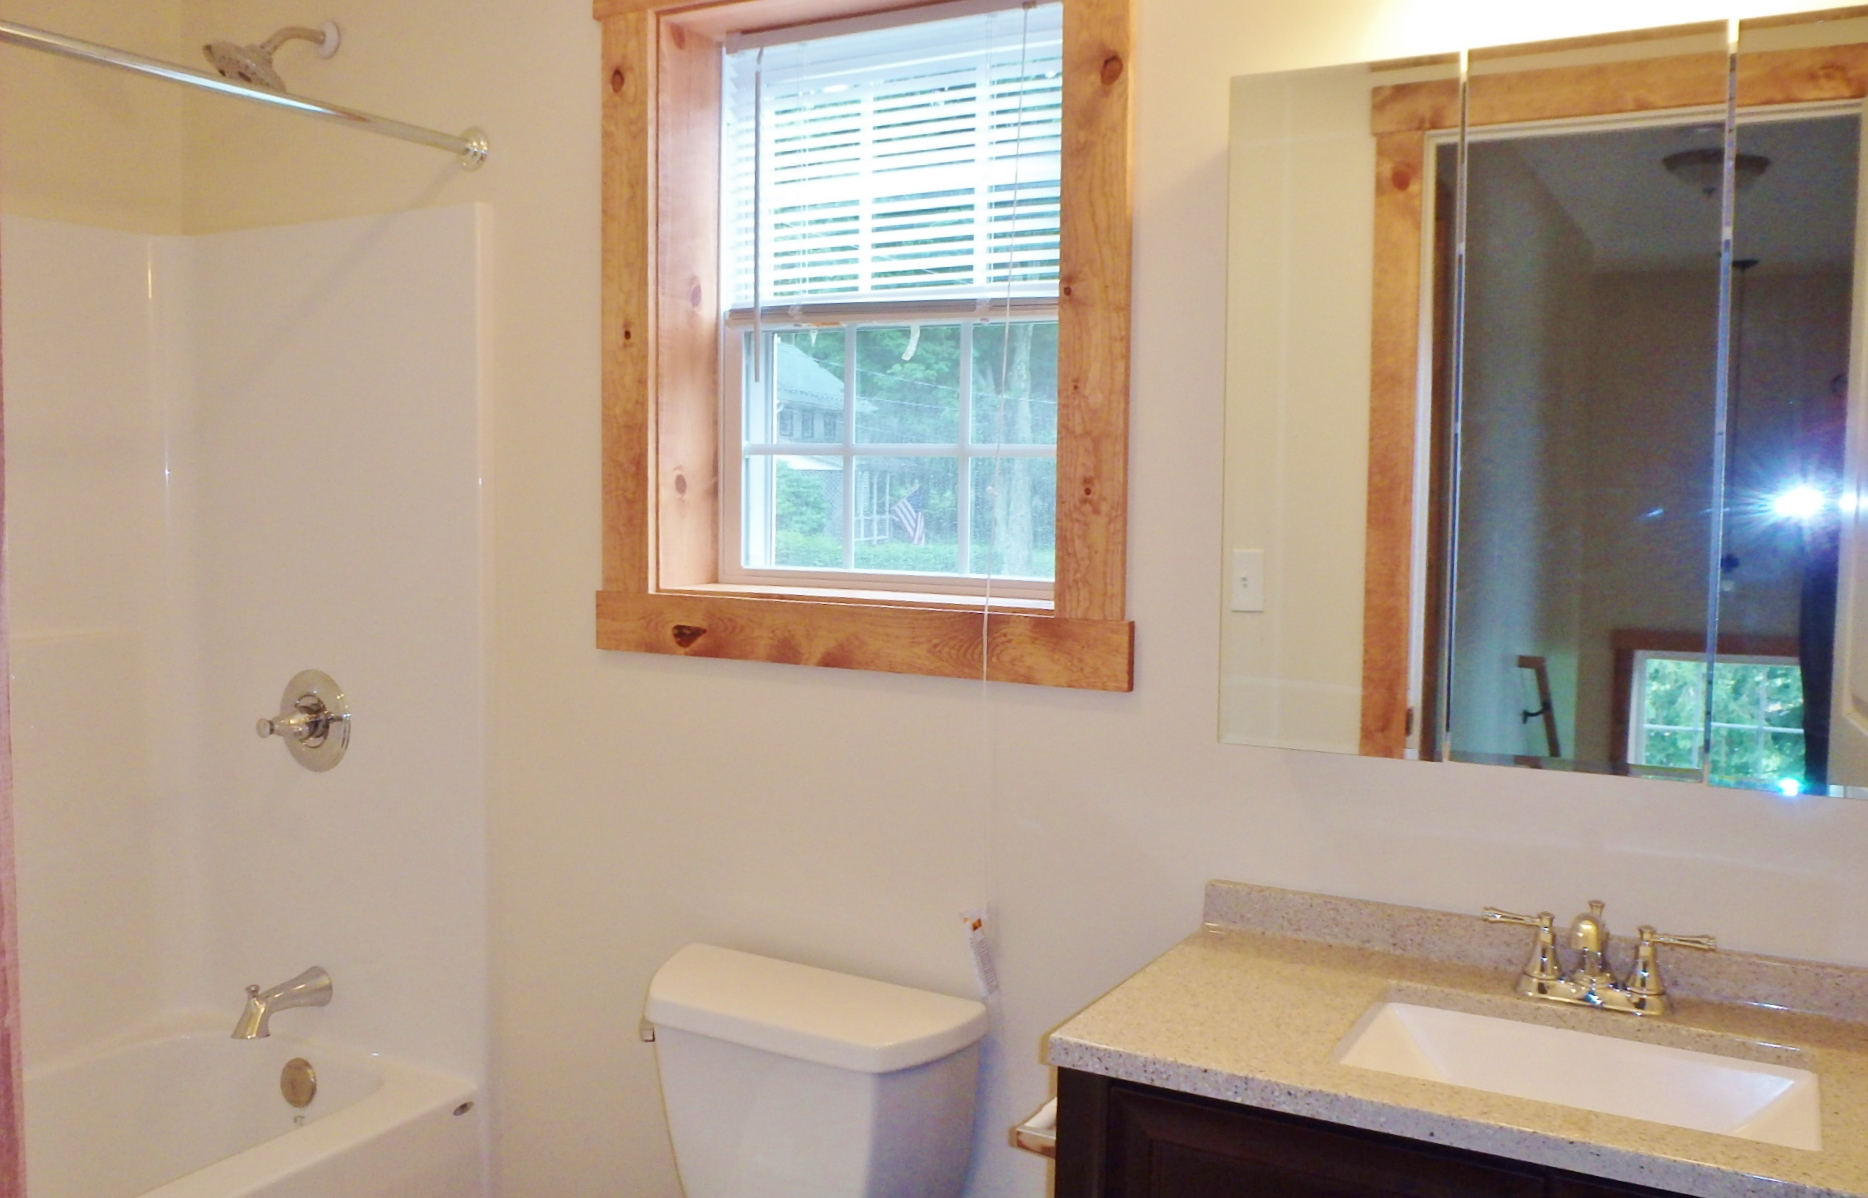 150 W. Ridge Lane Bathroom